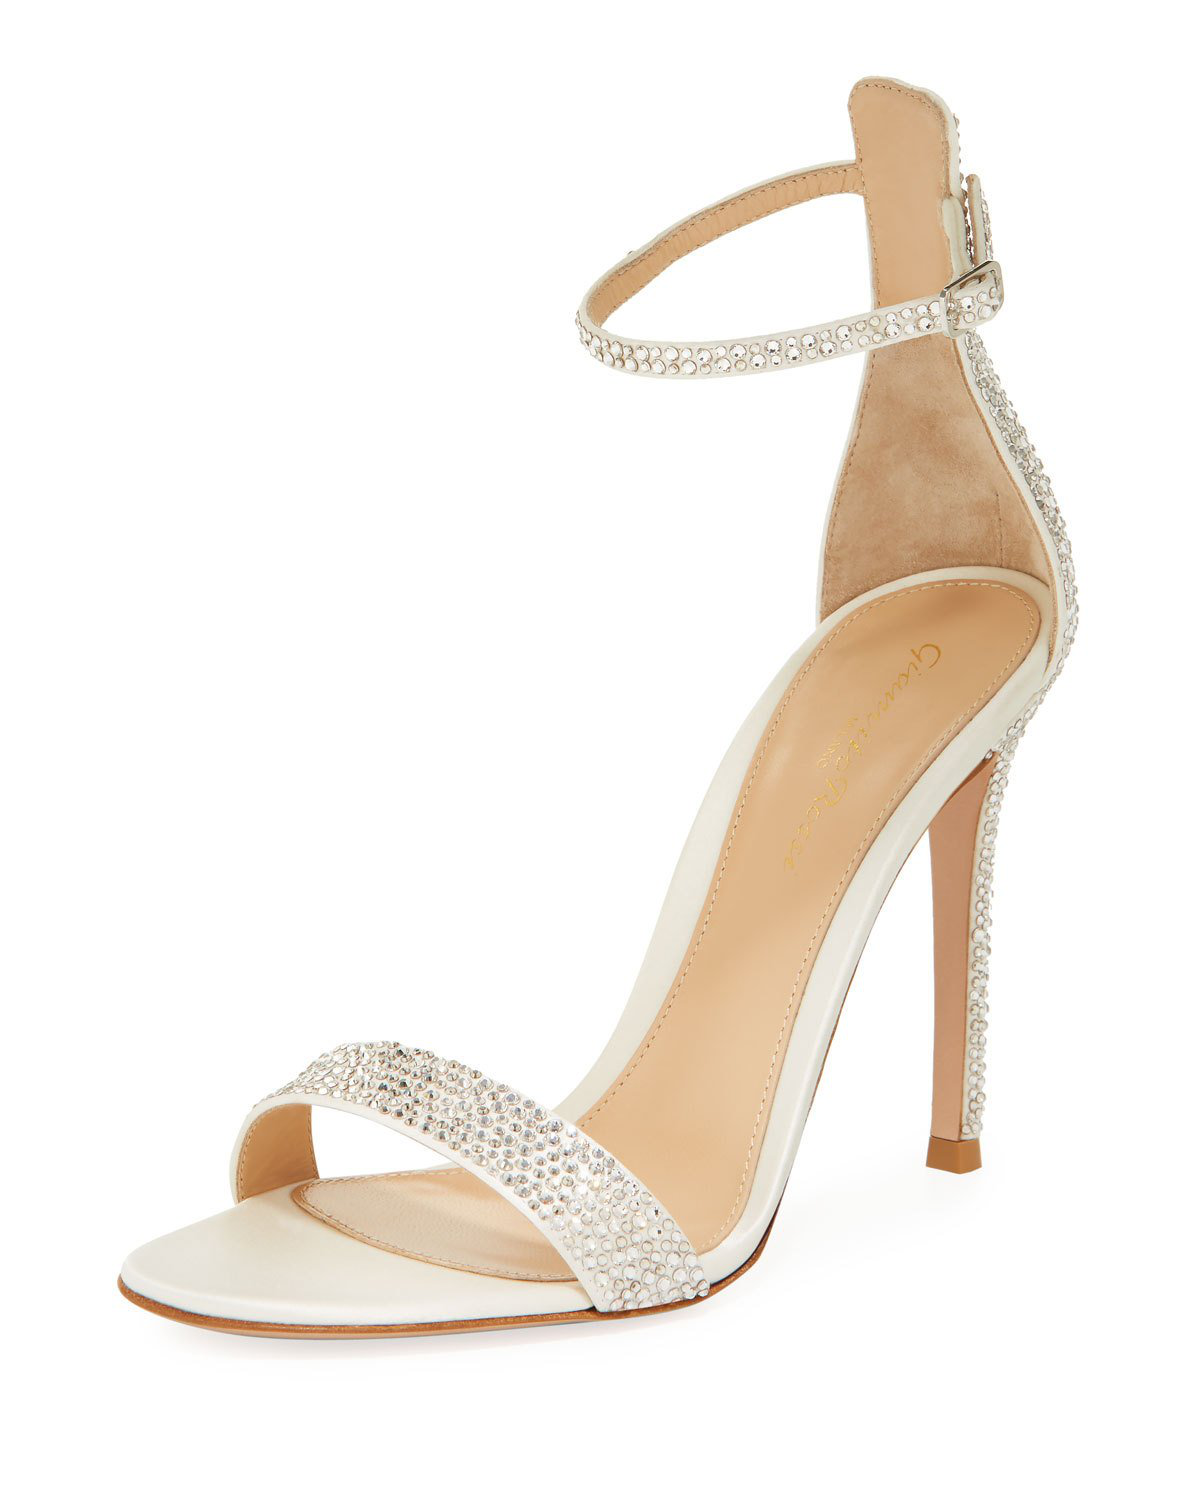 c20681cba99 Gianvito Rossi Crystal-Embellished Satin Sandals In White